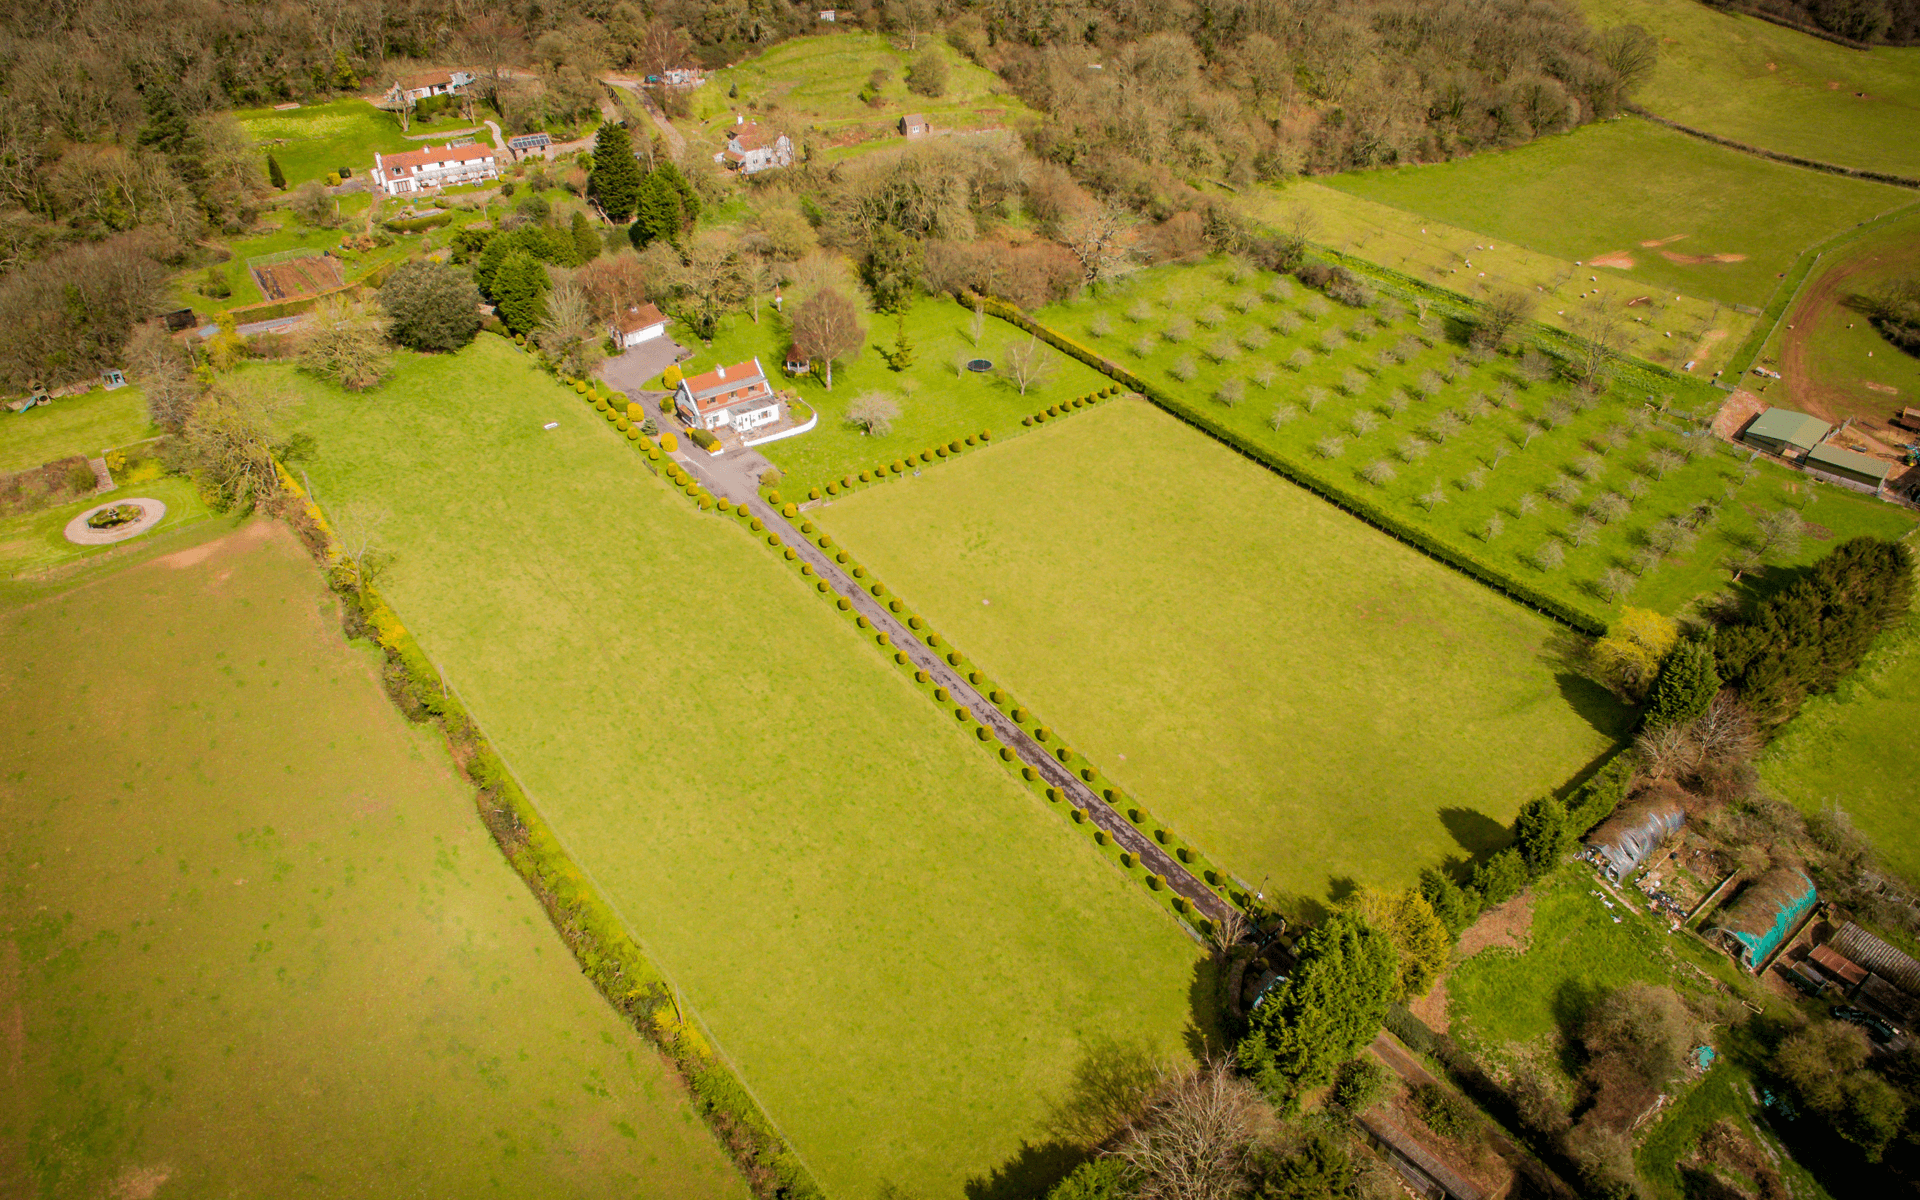 """Mavic Pro"" aerial drone photo of house in Clevedon, Bristol for estate agency"